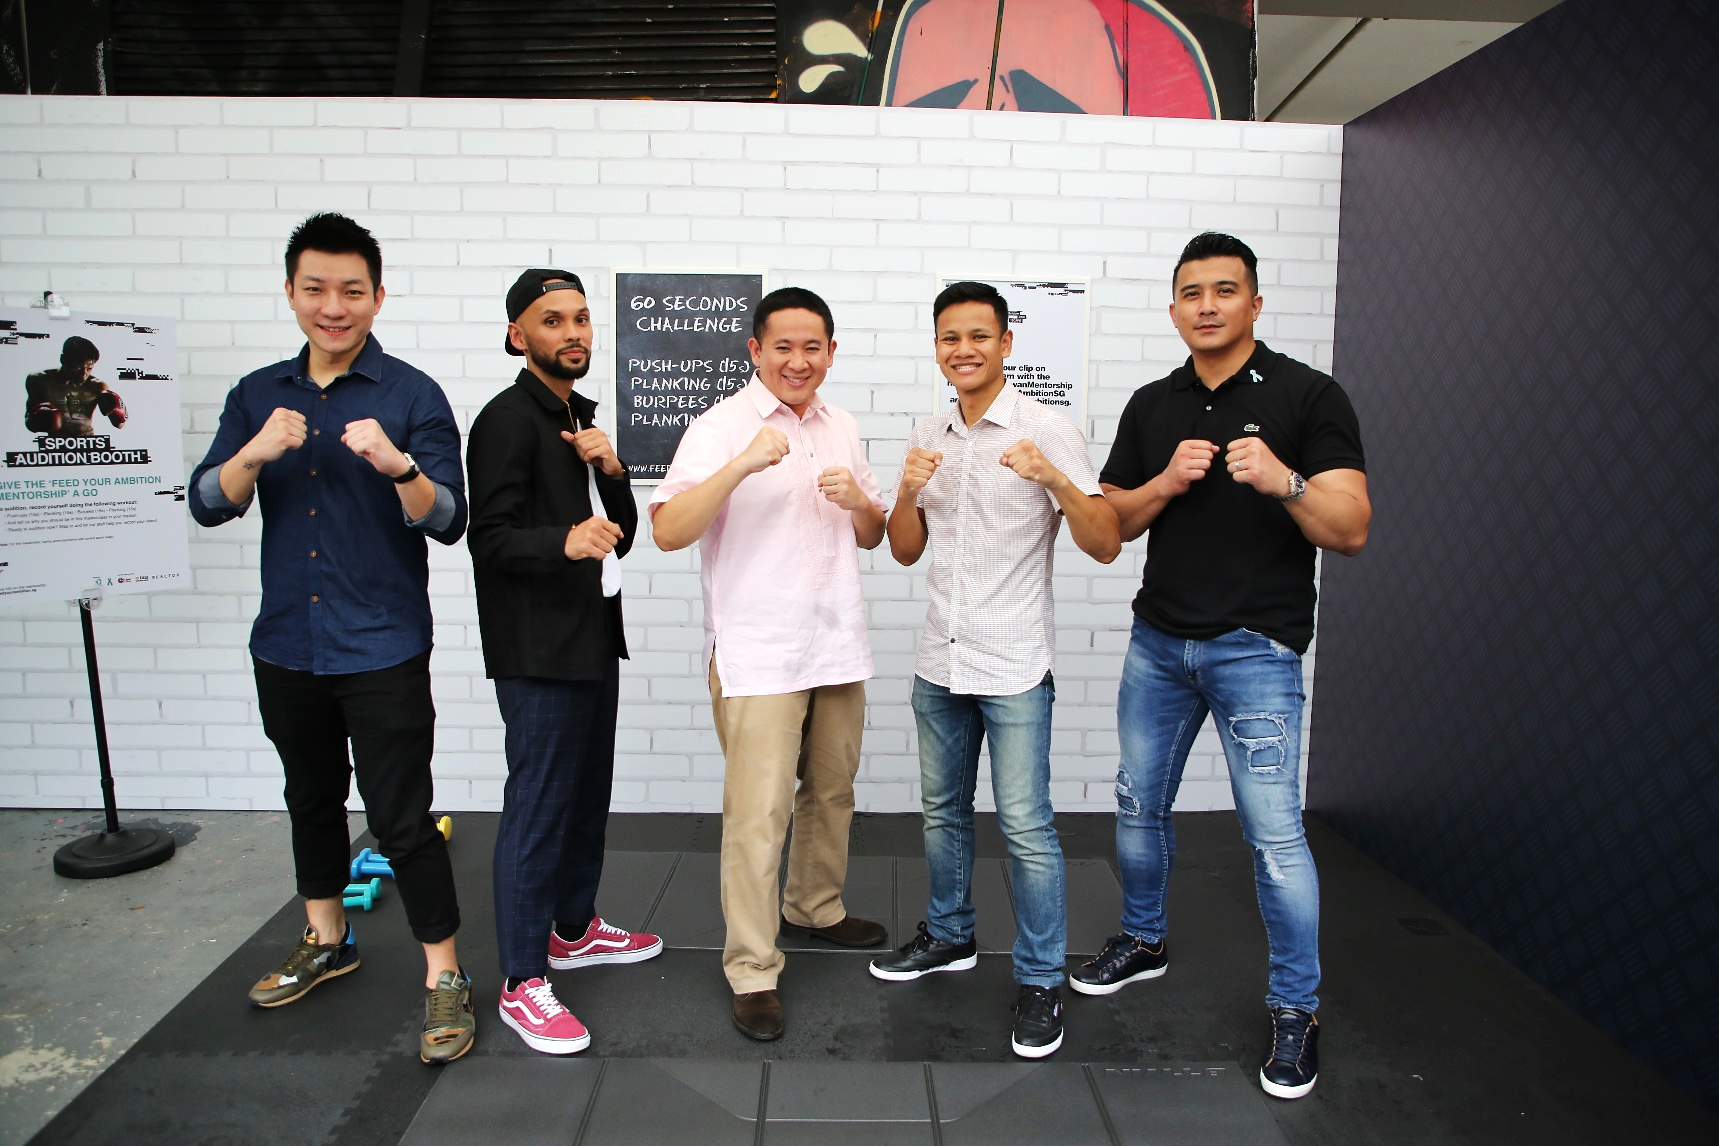 2018-media-launch-1: SPS Amrin with Enoch Teo, THELIONCITYBOY, Muhammad Ridhwan and Aaron Aziz